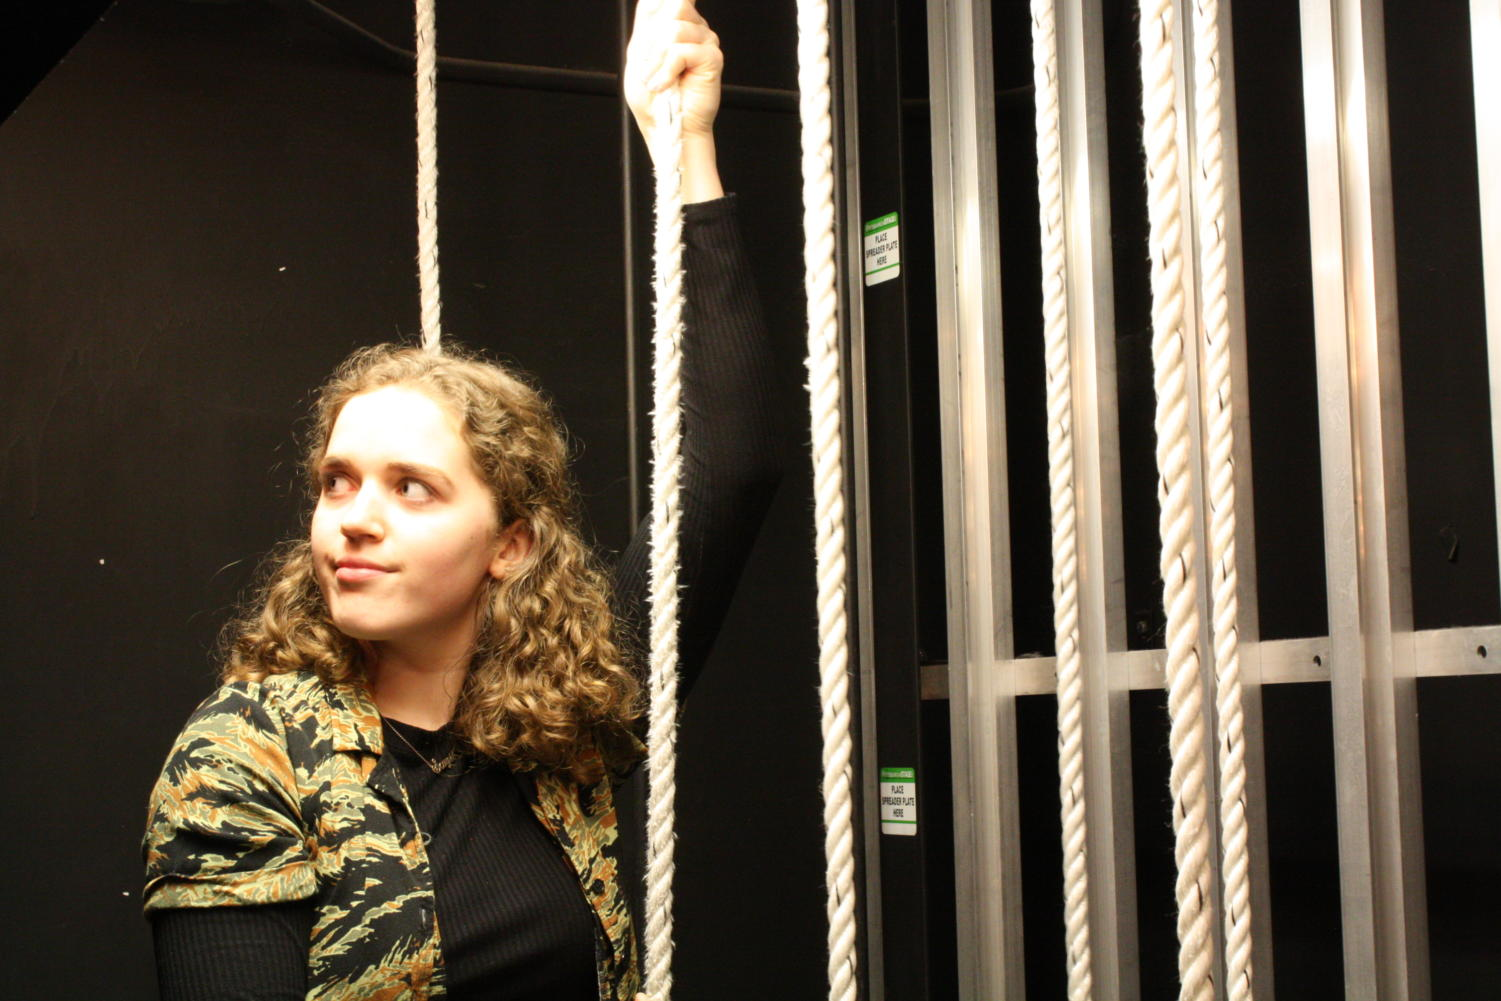 Kadrie also loves being backstage. Some of her favorite high school memories have been made through stage crew.